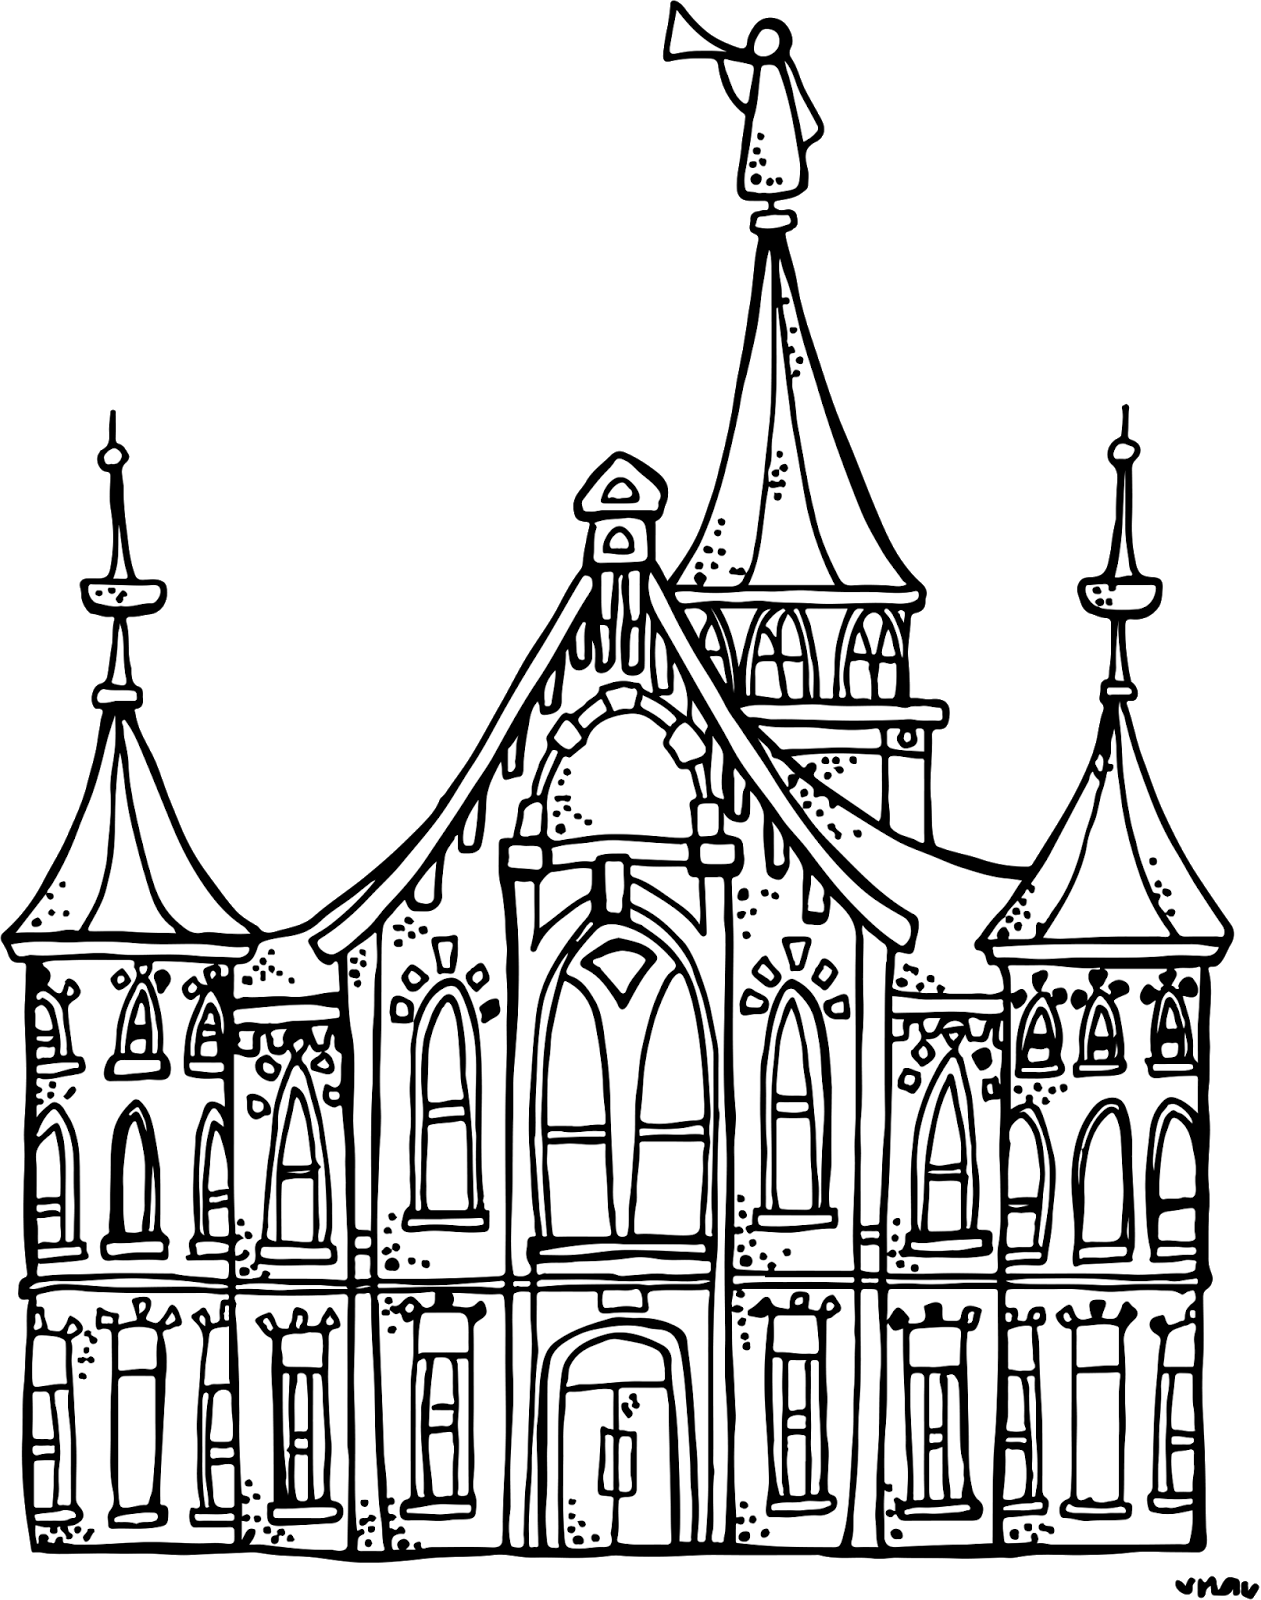 City drawing at getdrawings. Clipart castle medieval town